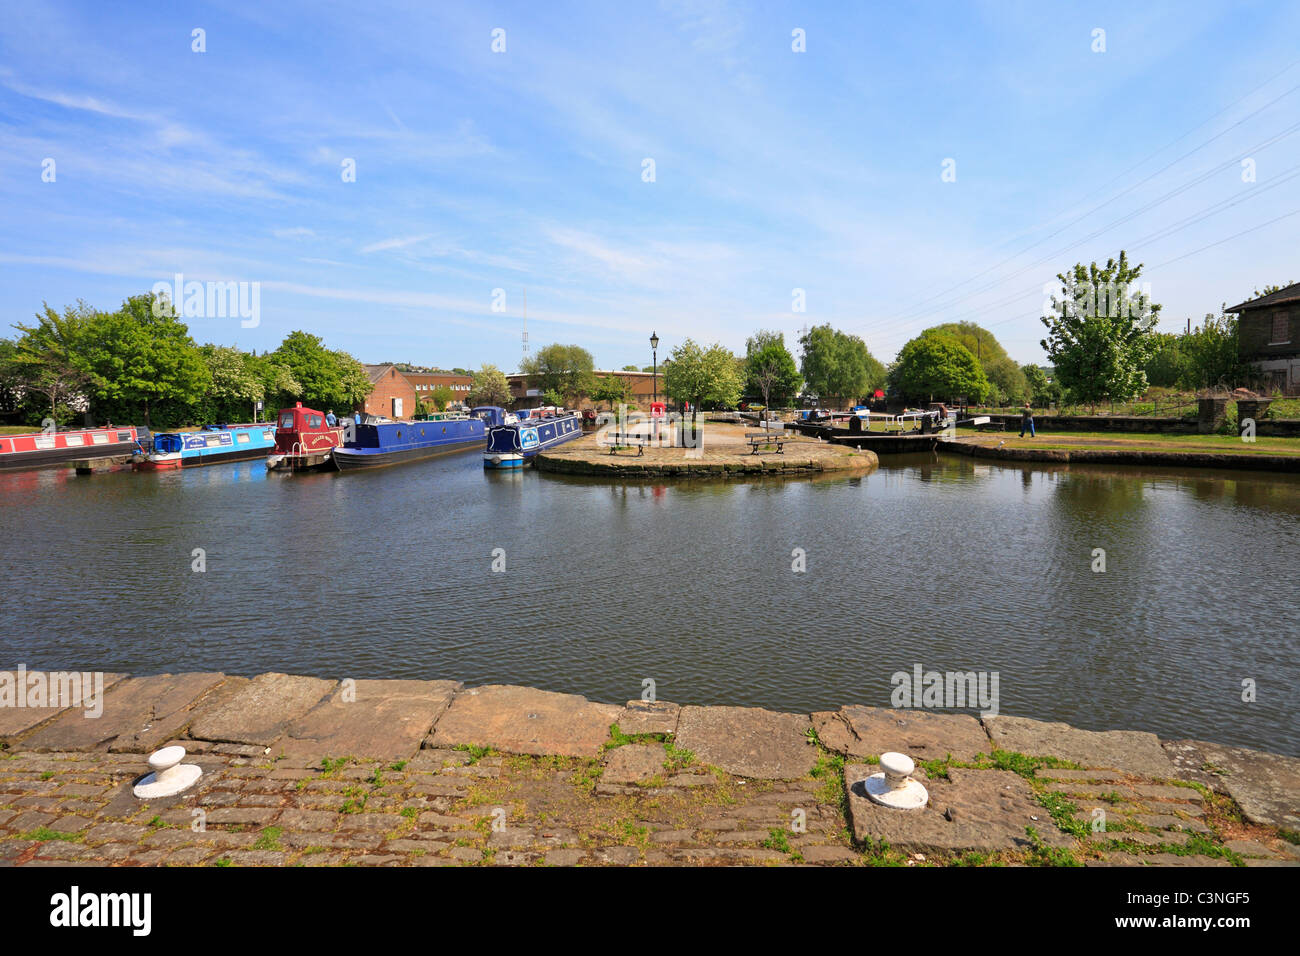 Canal Basin on the Calder & Hebble Navigation in Brighouse, West Yorkshire, England, UK. - Stock Image